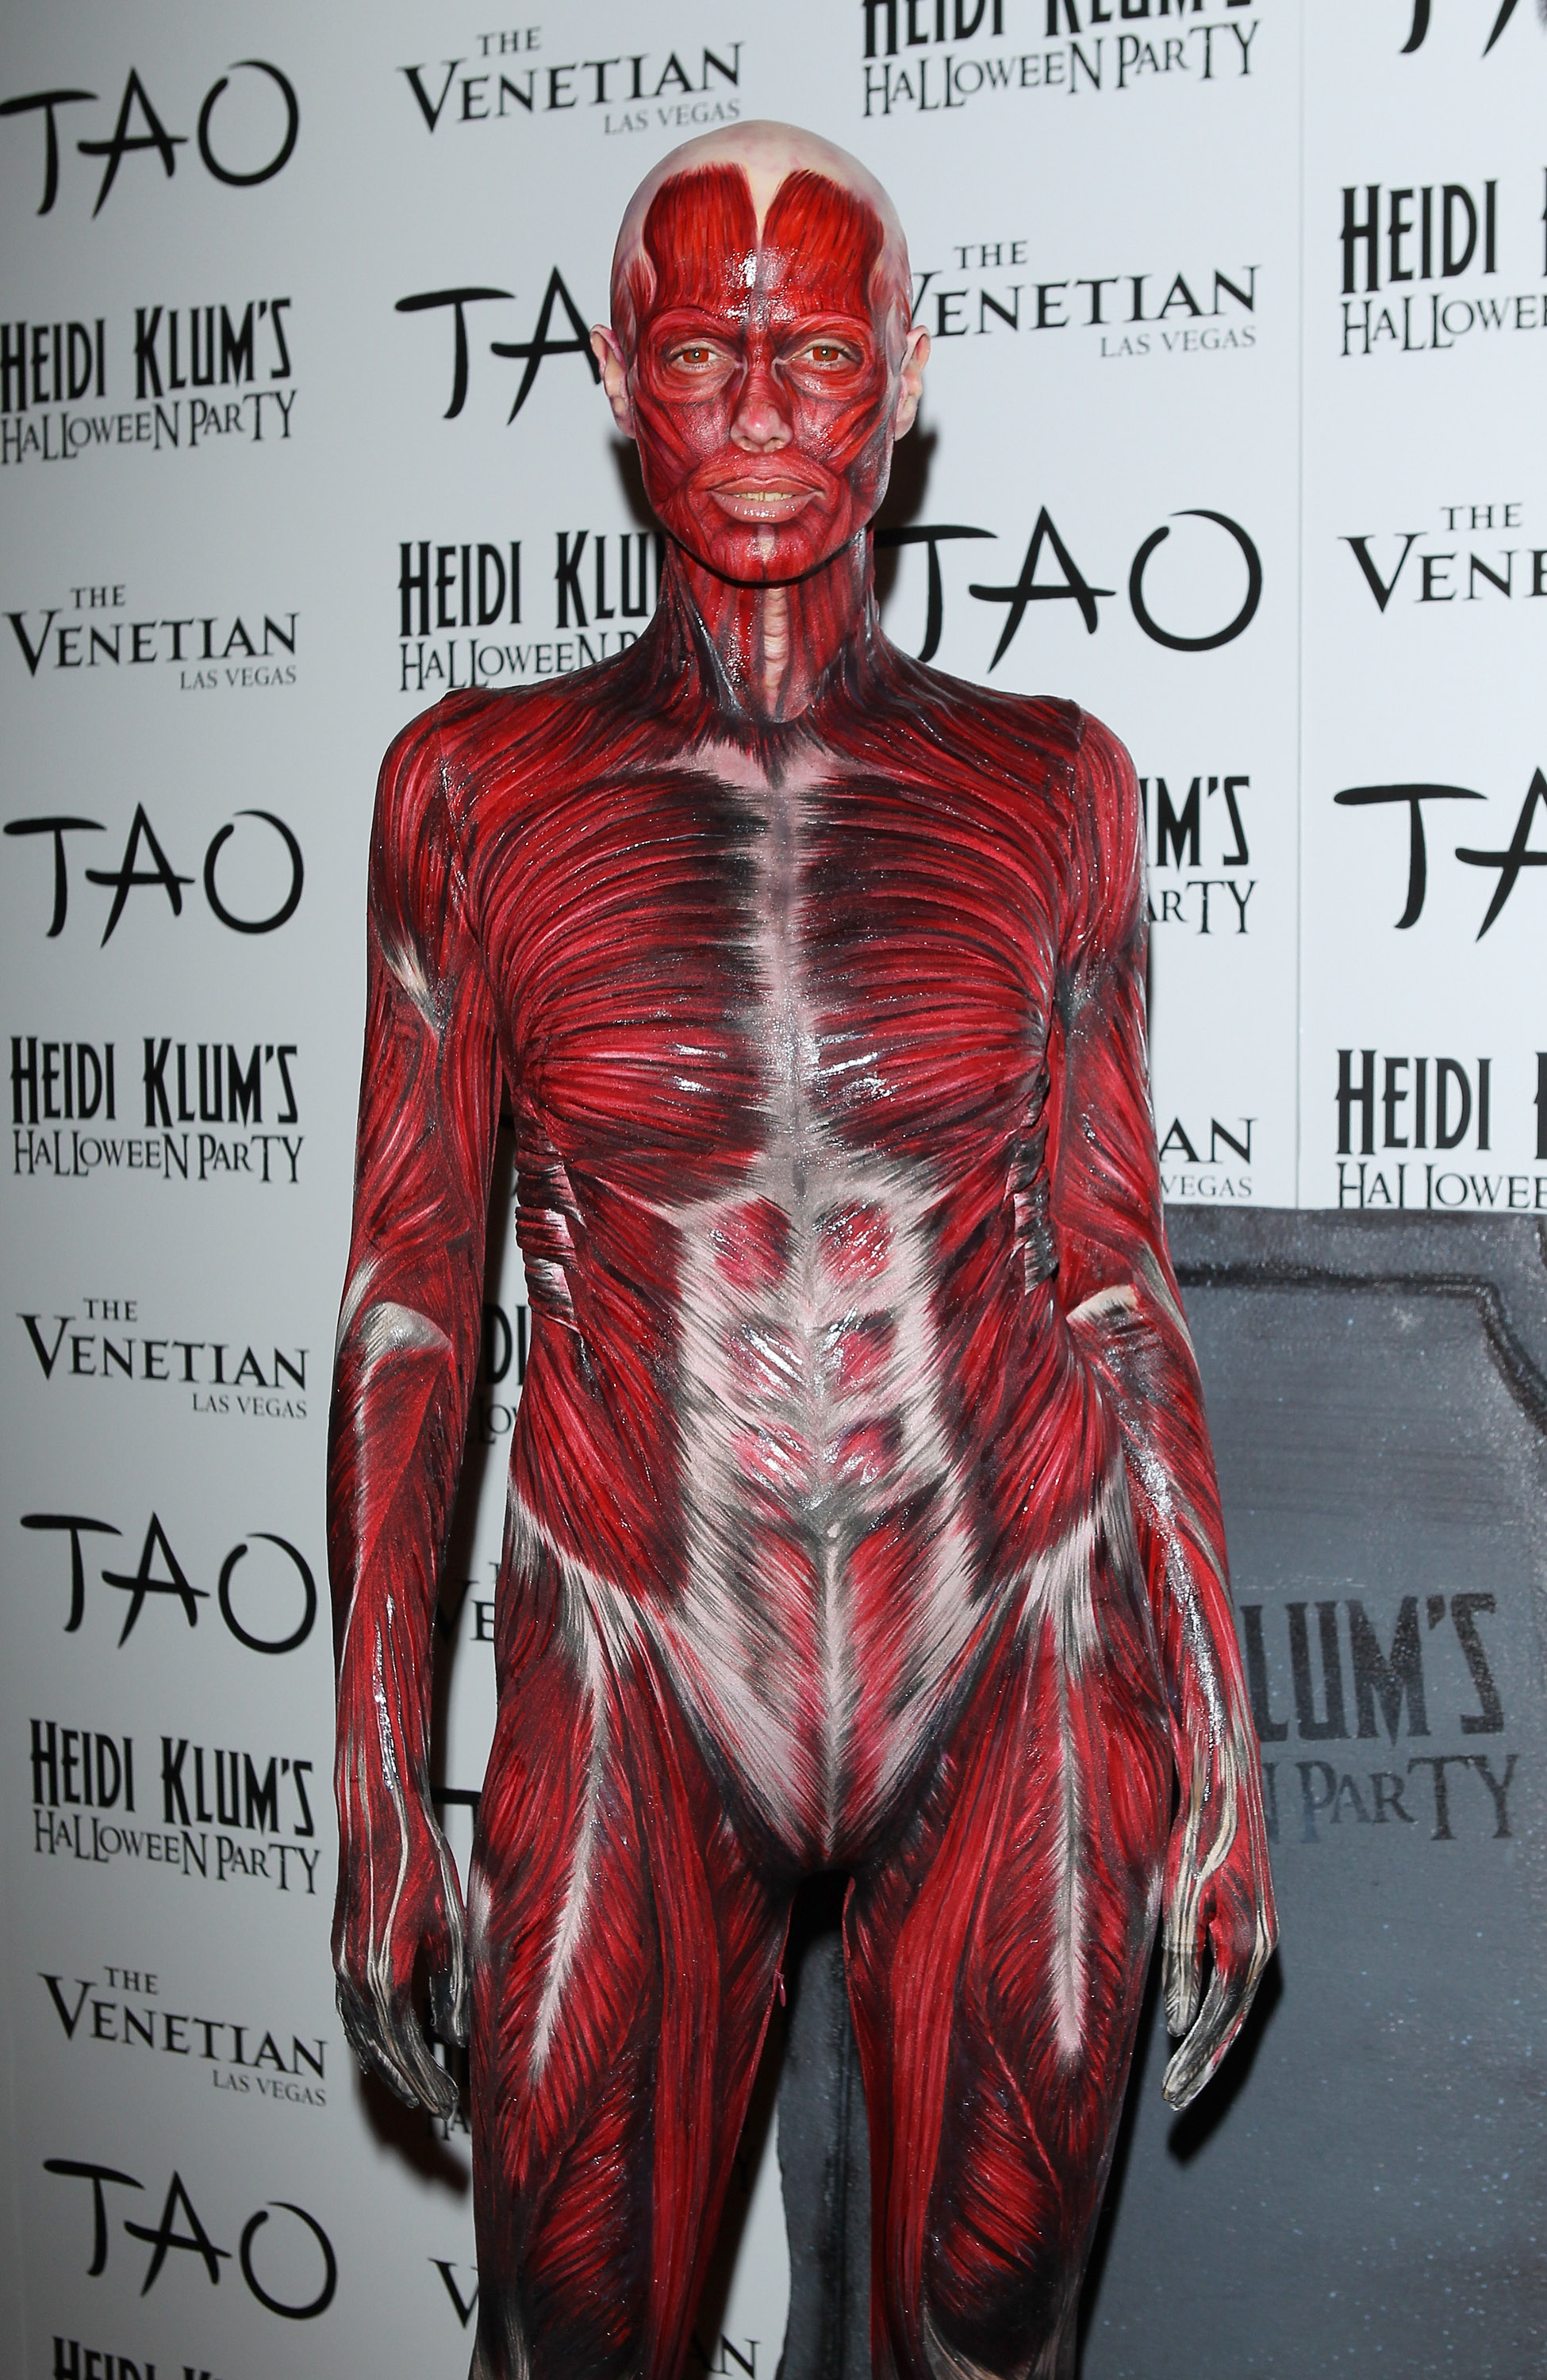 LAS VEGAS, NV - OCTOBER 29:  Heidi Klum arrives at her 12th Annual Halloween Party at TAO Nightclub at The Venetian on October 29, 2011 in Las Vegas, Nevada.  (Photo by Michael Tran/FilmMagic)